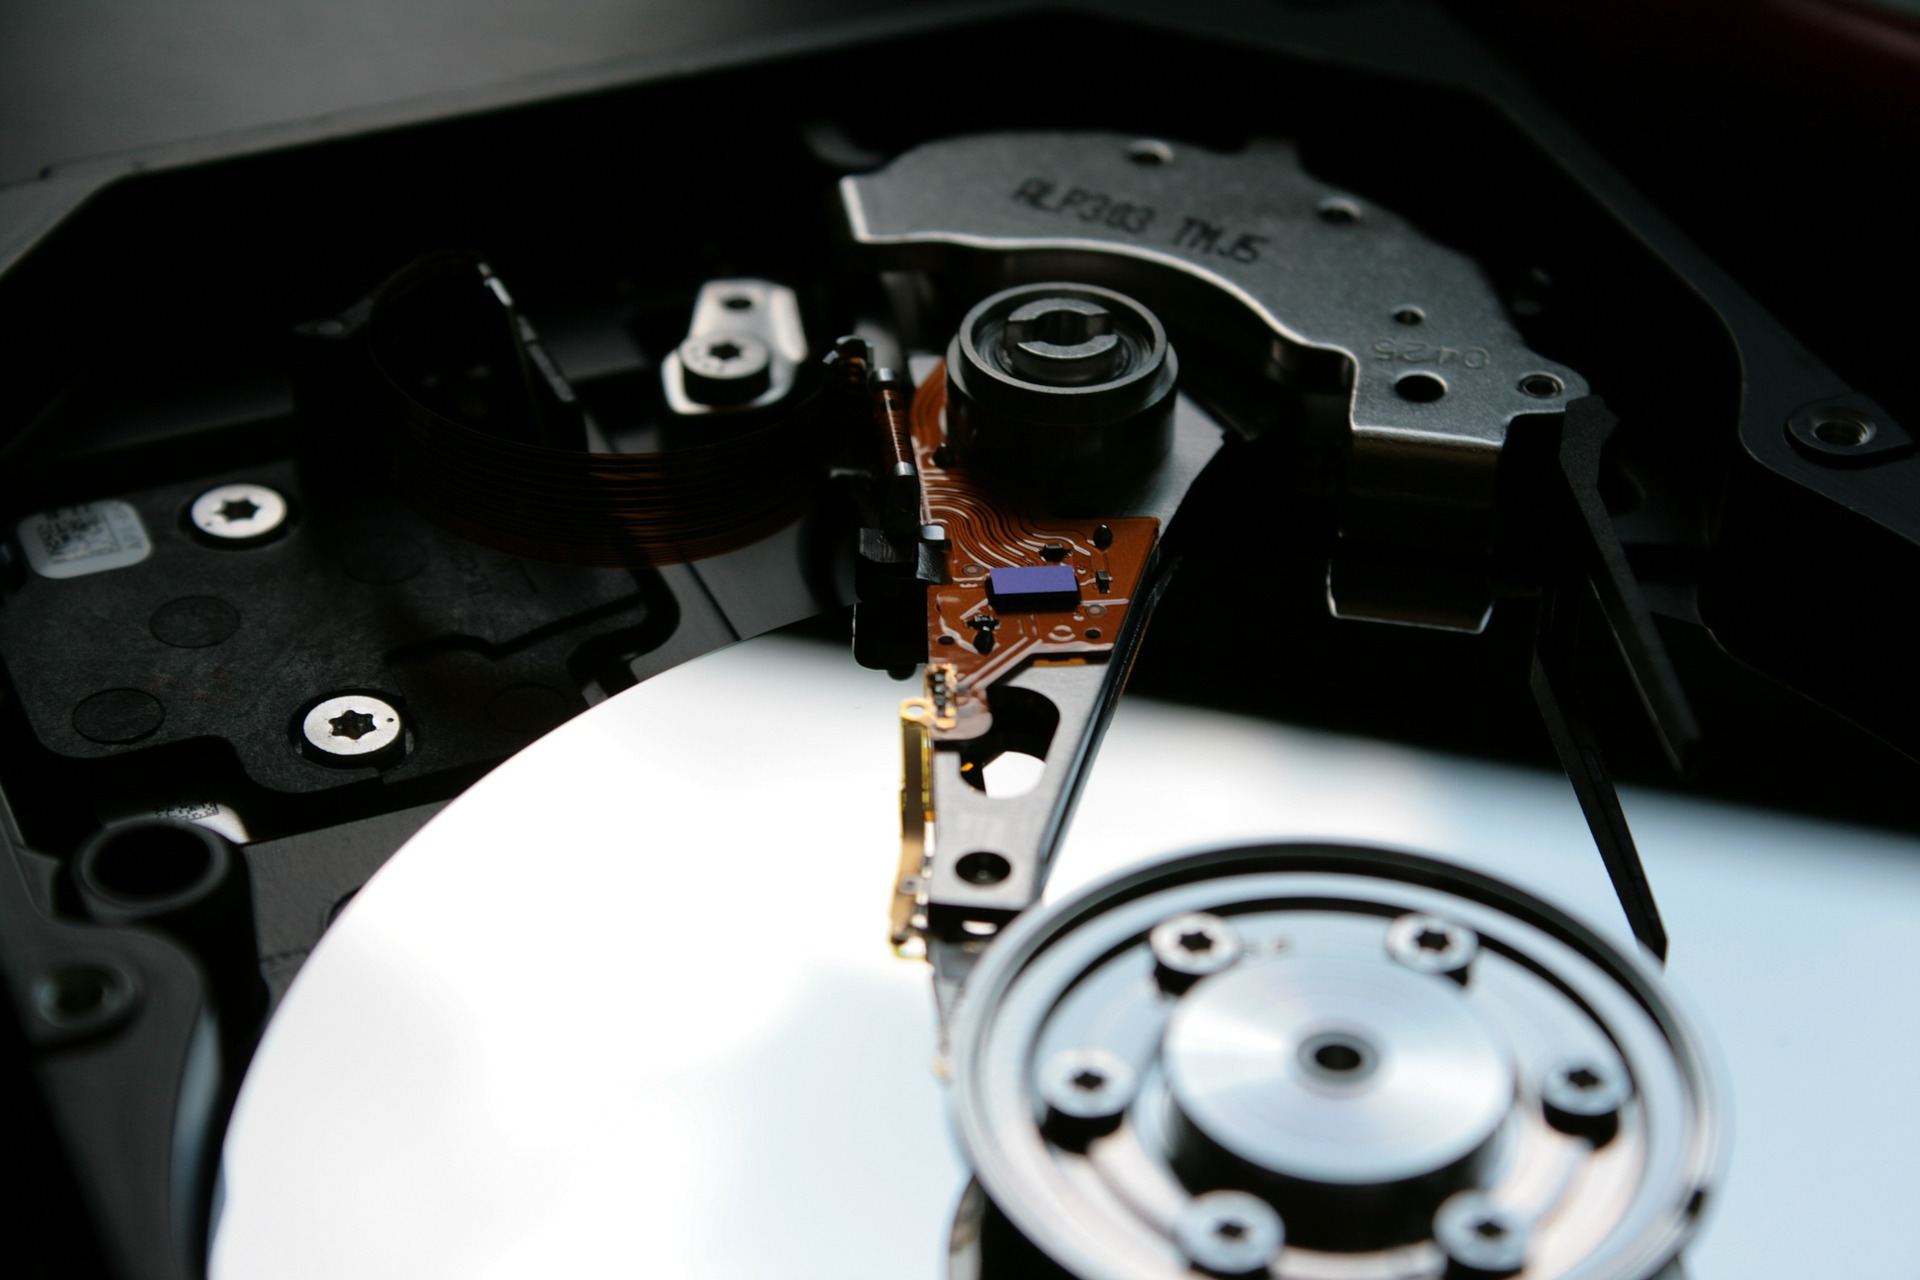 Keep your PC running smoothly